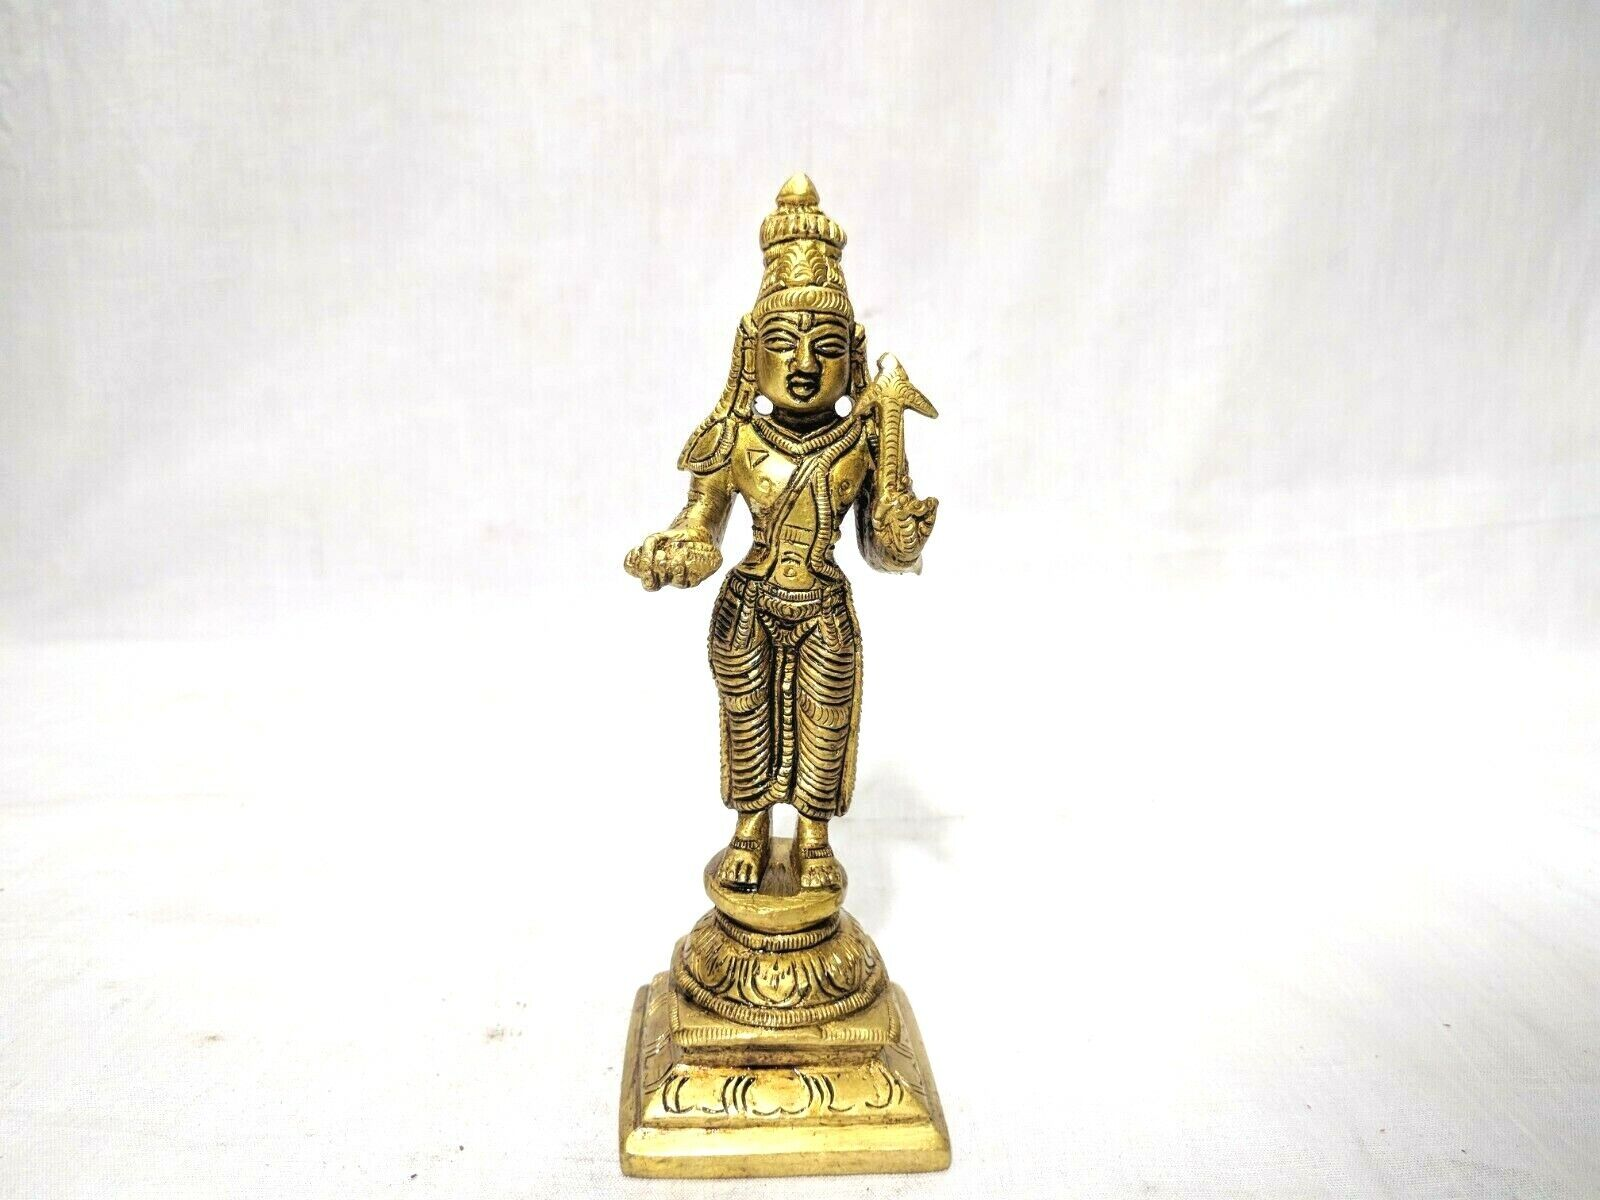 Dashavatar Brass Statue Vishnu Ten Avatar God Pooja Figurine Temple Art Decor Без бренда - фотография #9